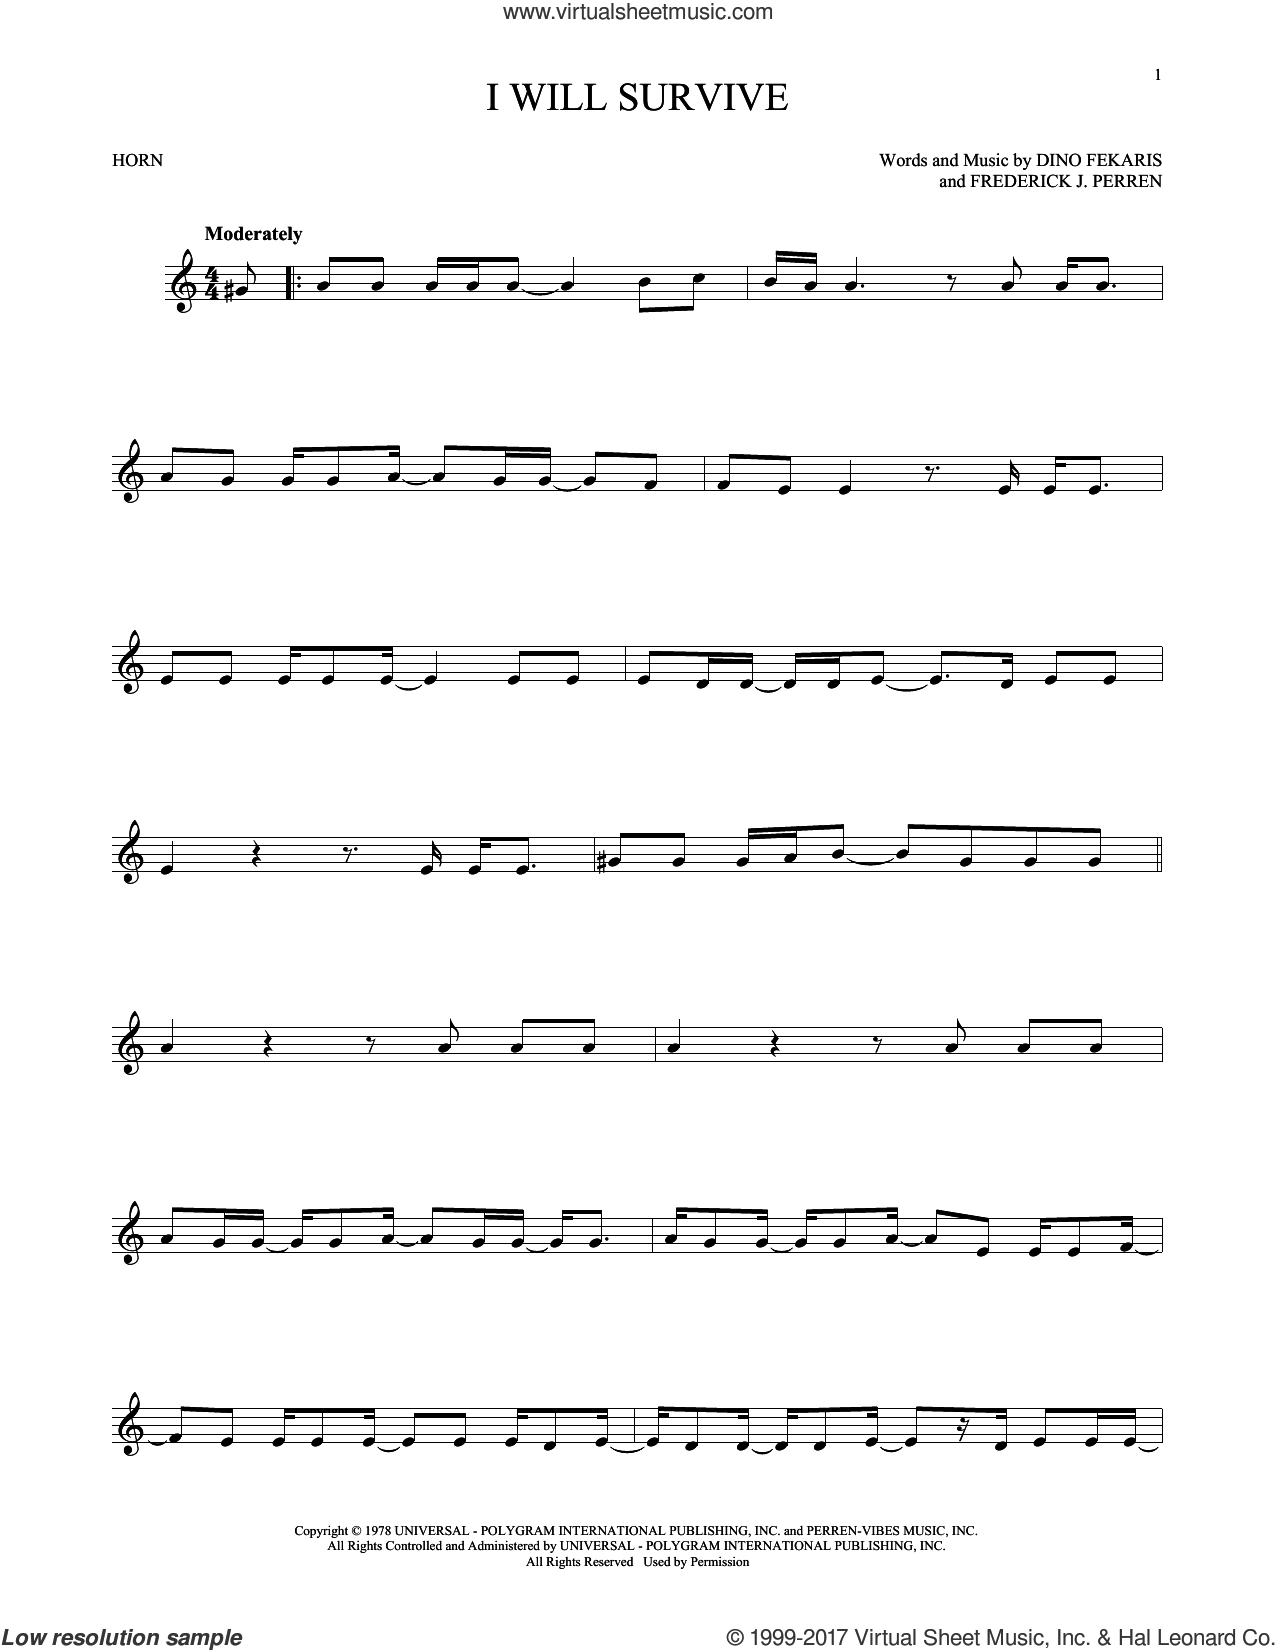 I Will Survive sheet music for horn solo by Gloria Gaynor, Chantay Savage and Frederick Perren, intermediate skill level